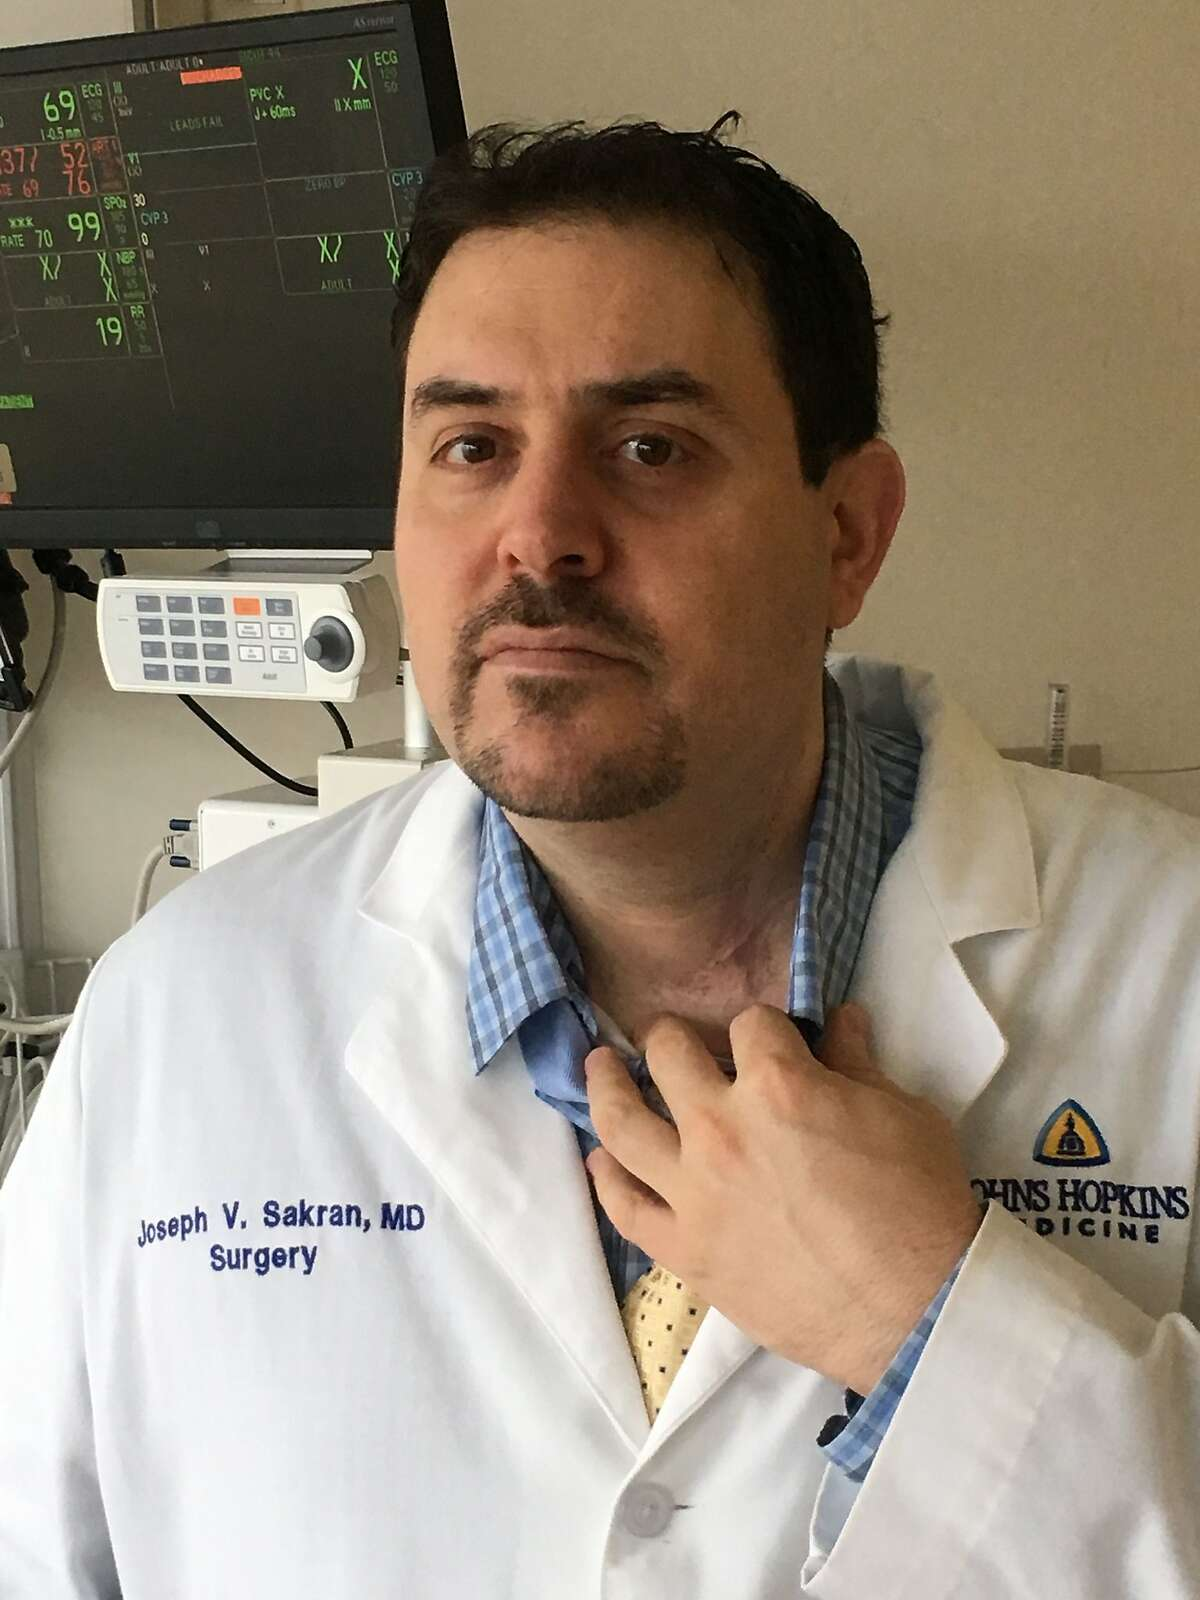 Dr. Joseph Sakran, a trauma surgeon who is taking aim at gun violence, shows scarring from the operation that saved his life, after he was shot in the throat in 1994, at Johns Hopkins Hospital in Baltimore, Maryland on January 2, 2018. - Now a trauma surgeon who fights to save shooting victims on the operating table, Sakran says gun violence in America is a health crisis that medical professionals can and should help address. (Photo by W.G. Dunlop / AFP)W.G. DUNLOP/AFP/Getty Images